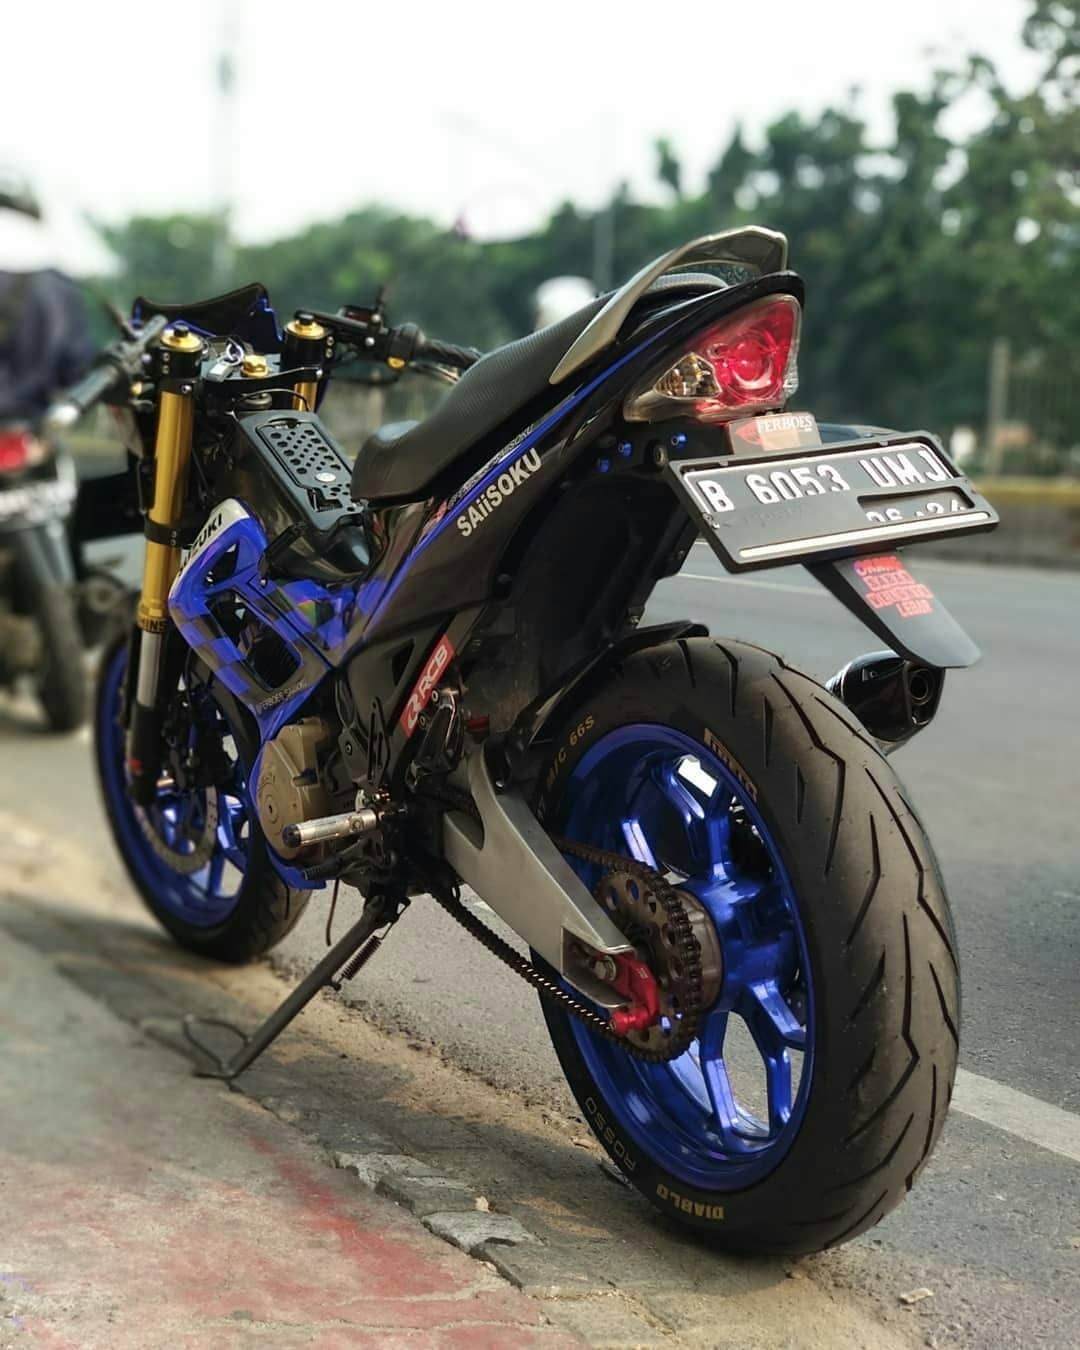 bikeindonesia,mantabdjiwa,FuFiGambot,bikeindonesia,TeamGambot,Suzuki,SuzukiSatriafu150,TeamArogan,NwGang,GTB,R9Exhaust,Brembo,TDRRacing,SatriaFUModifikasi,under250indo,GSXR150,MotovlogIndonesia,Wheelie,Sunmori,photography,photooftheday,gilatouring,motorcustom